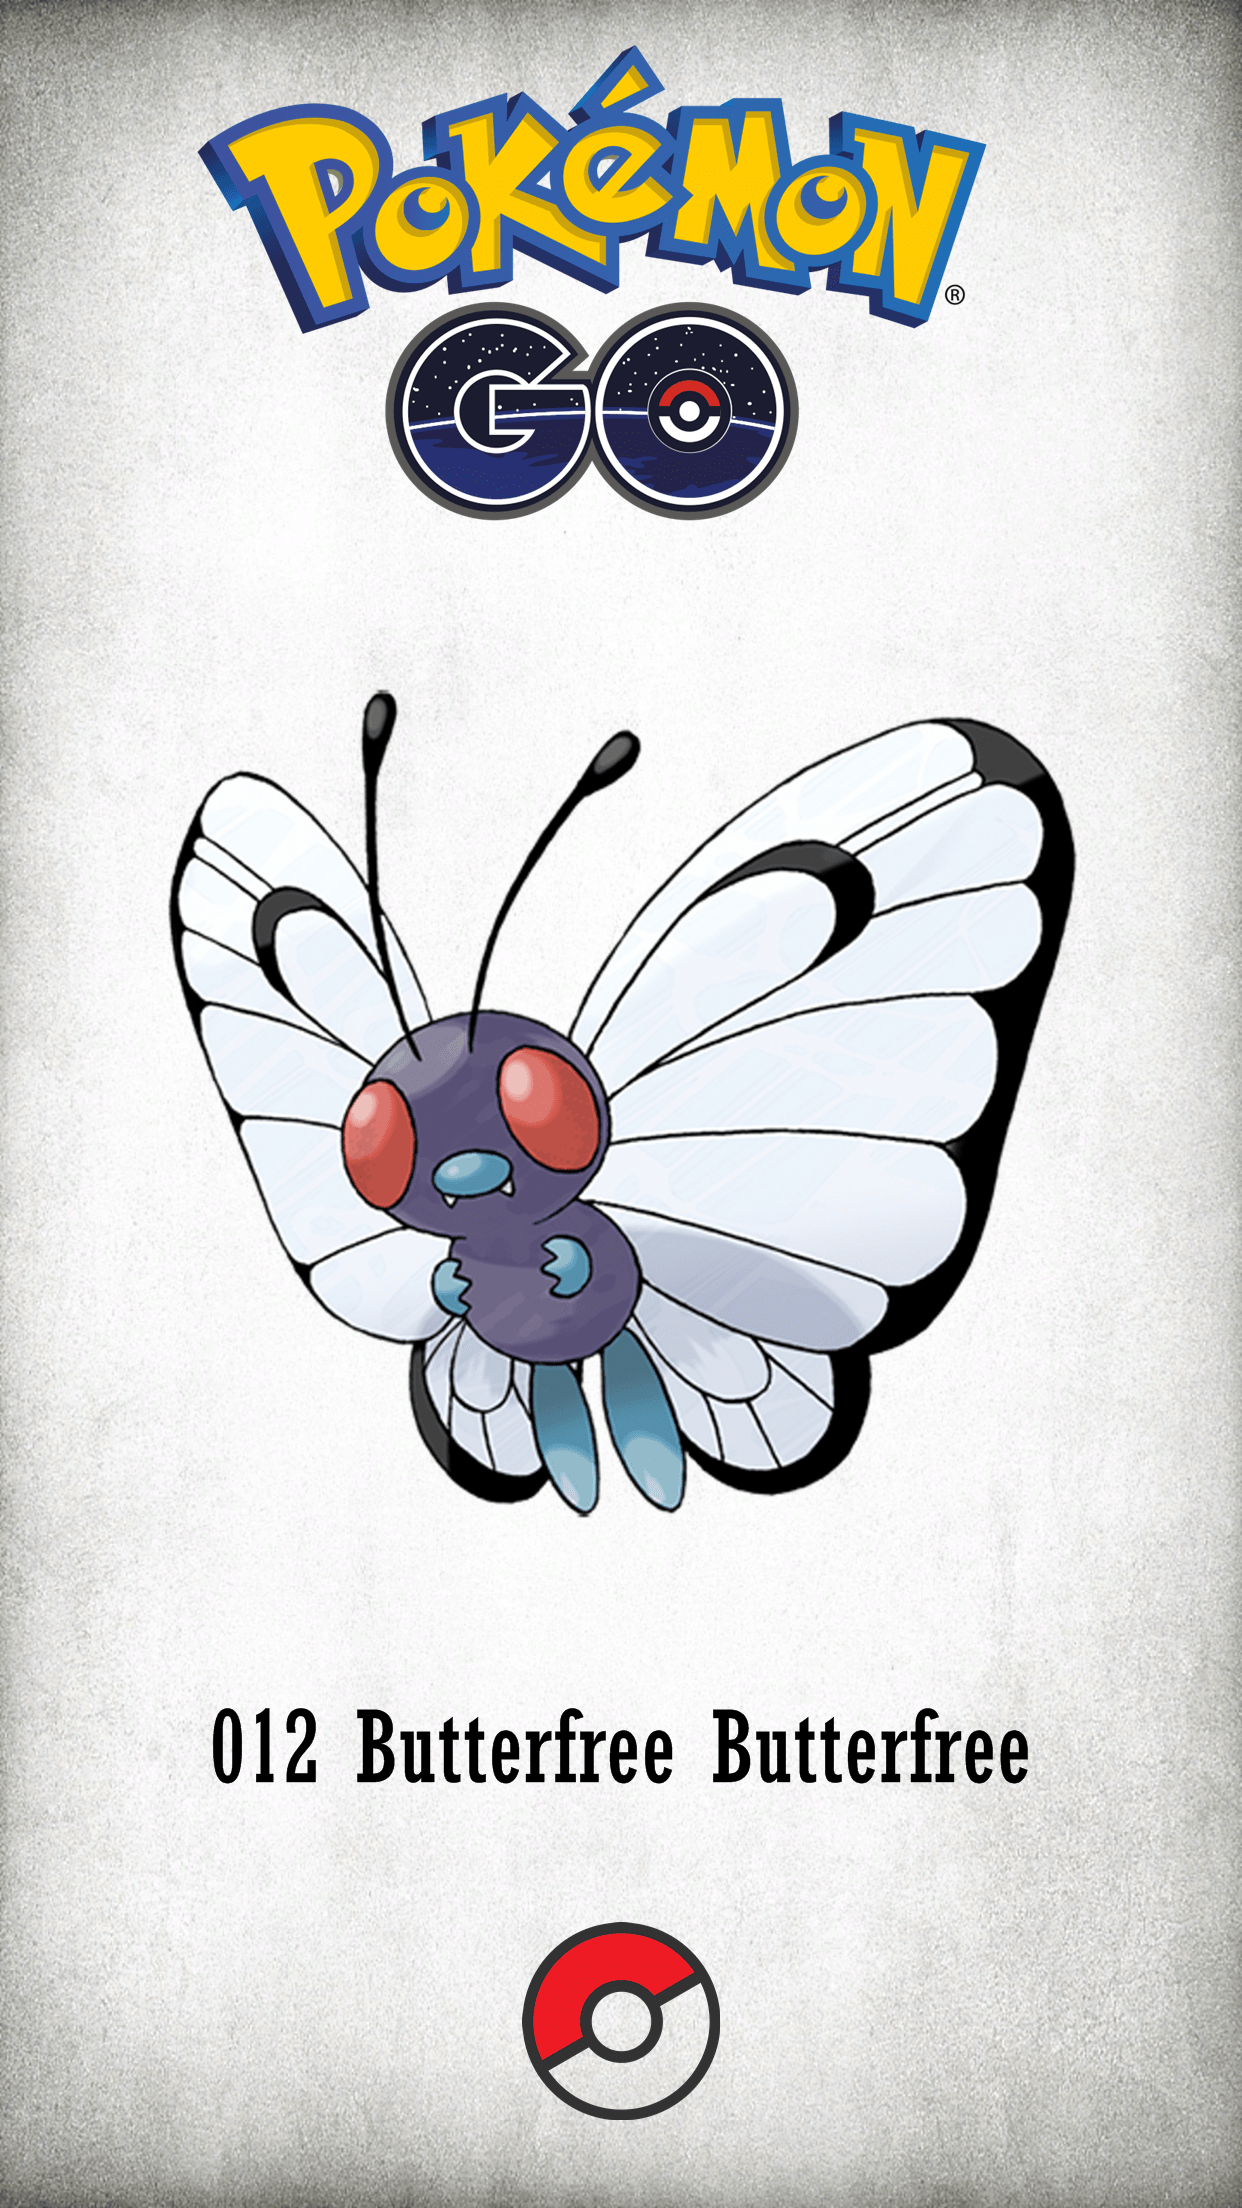 012 Character Butterfree Butterfree | Wallpaper